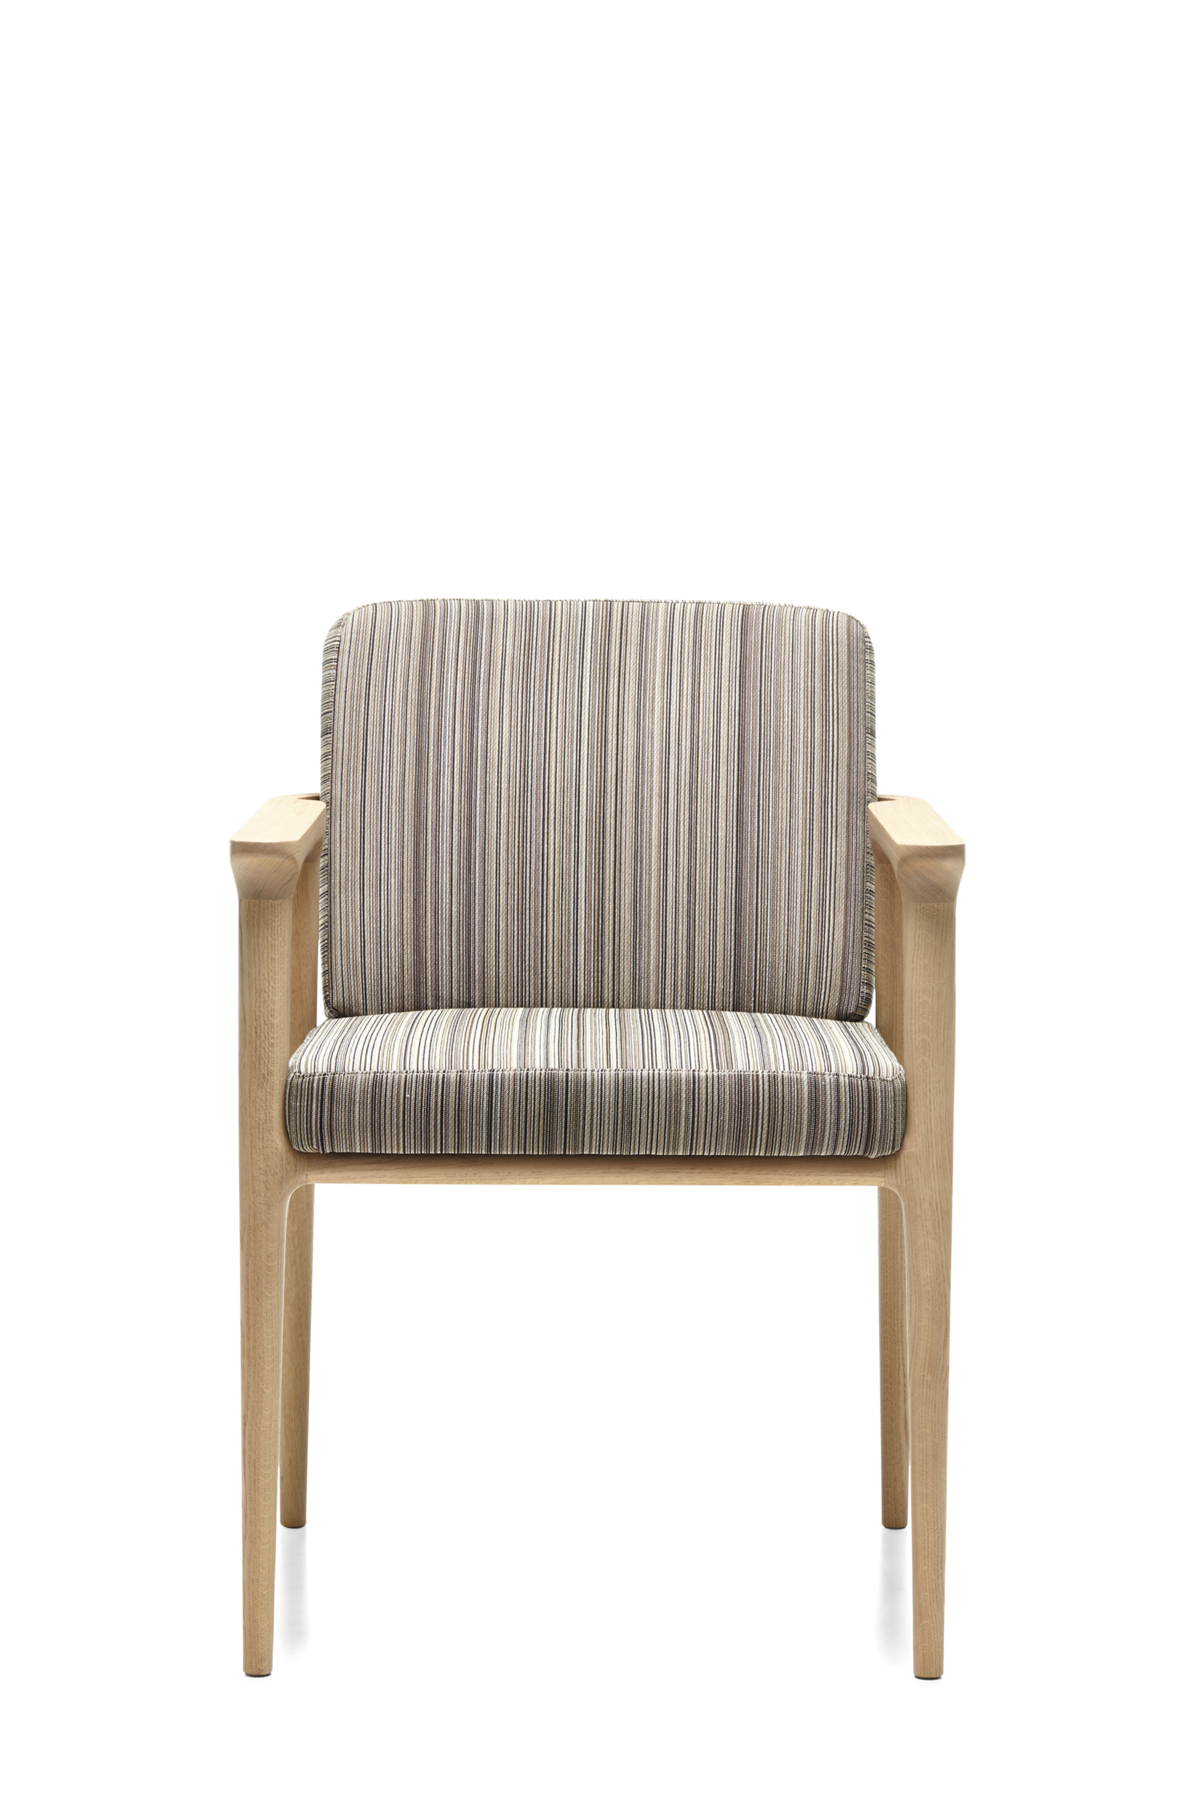 Zio Dining Chair Manga Brown White Wash wood front side